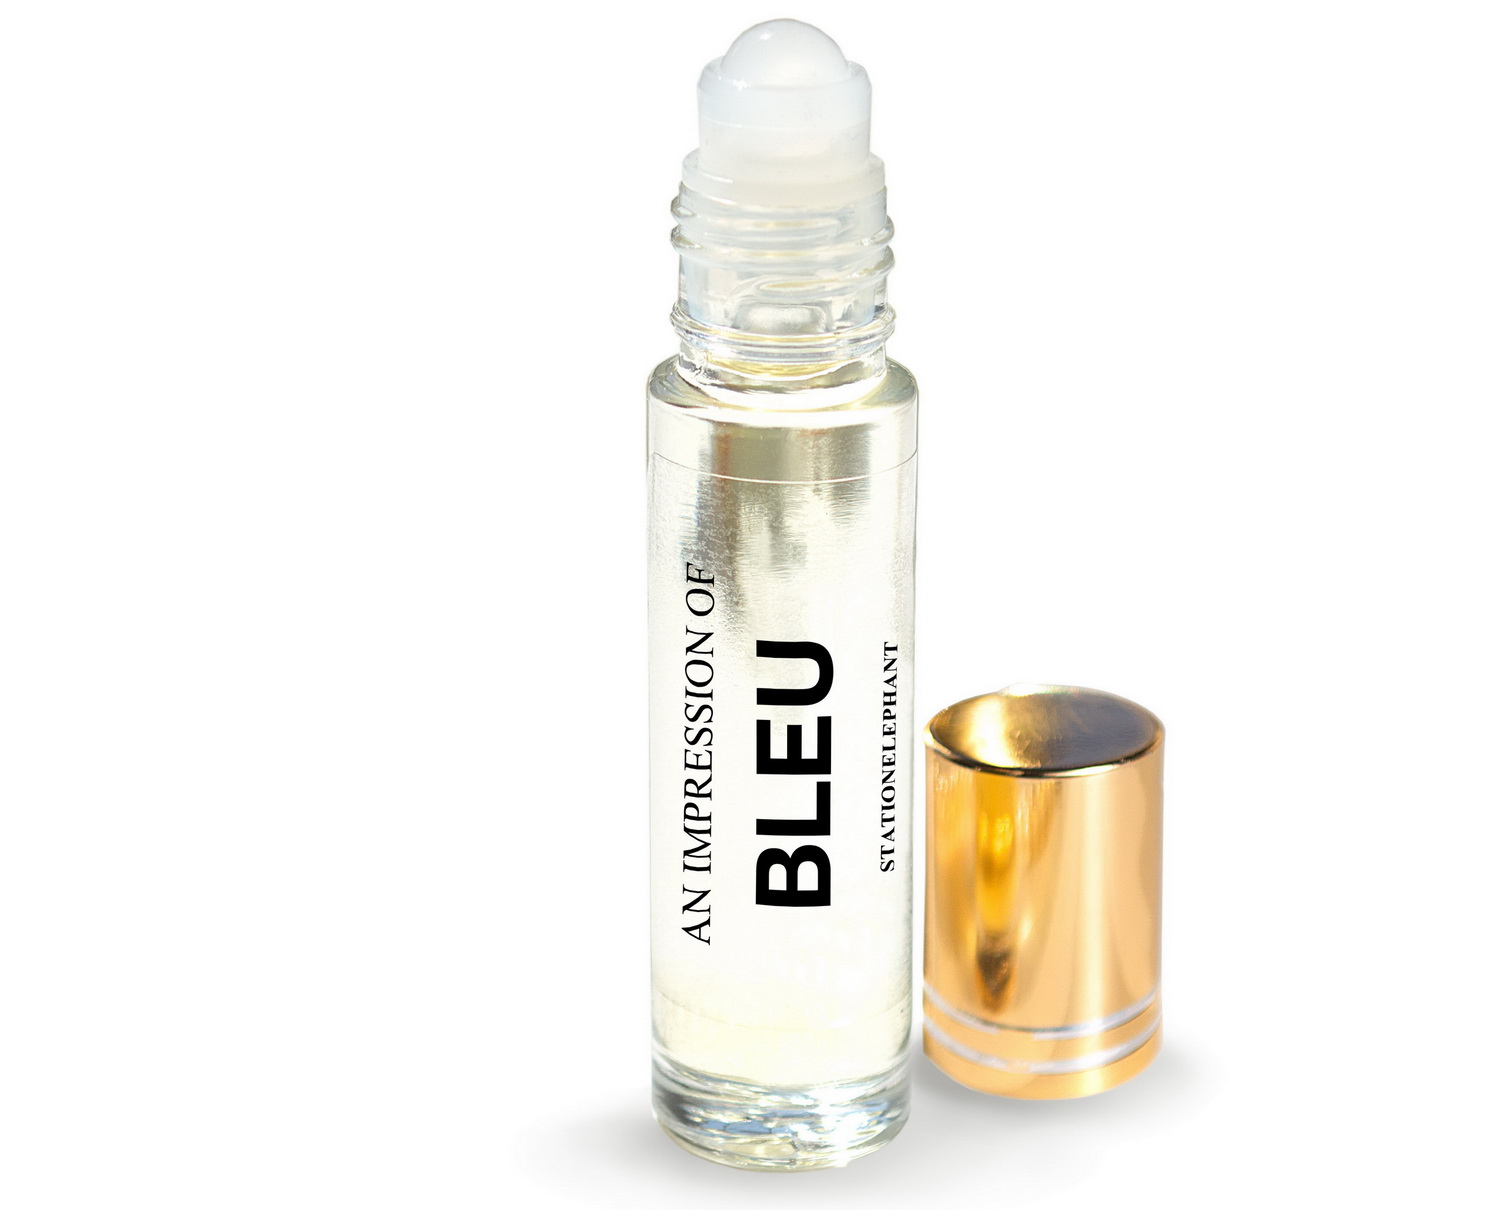 BLEU Type Vegan Perfume Oil by StationElephant.